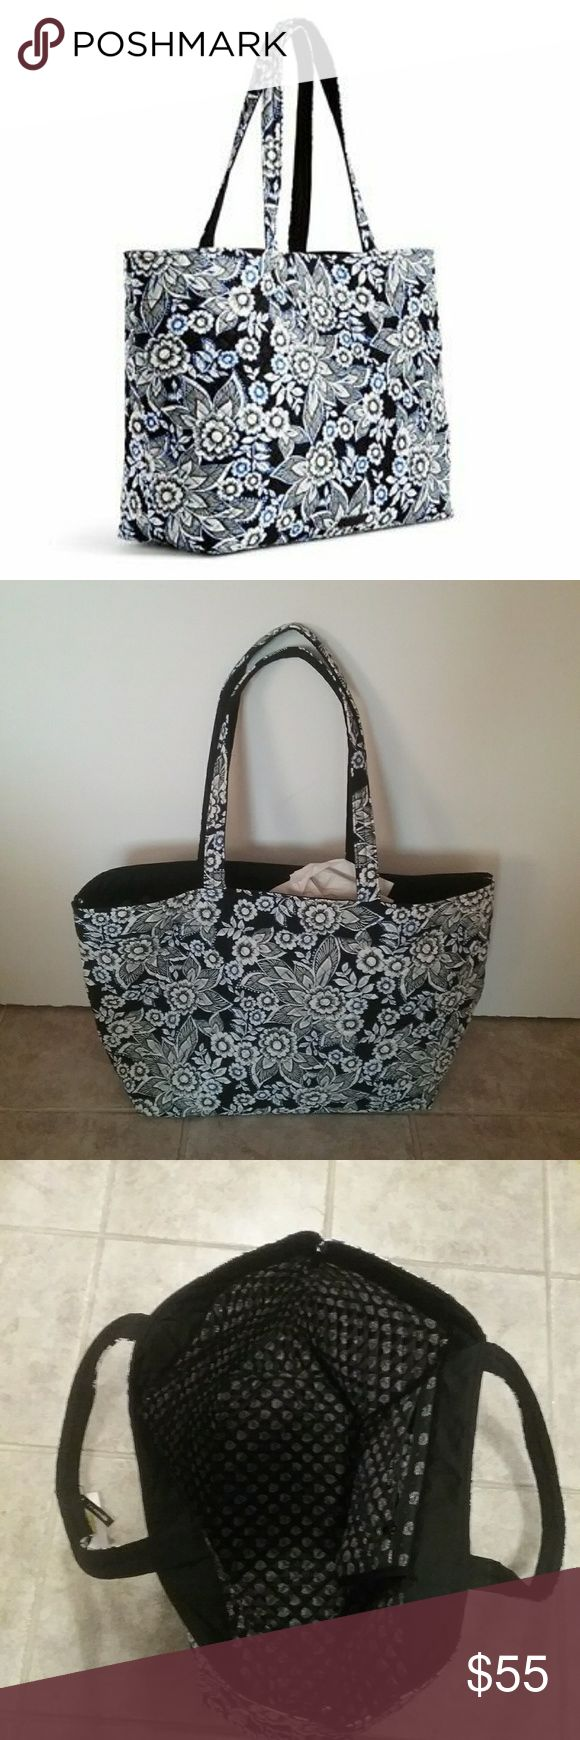 "NWT Vera Bradley Iconic Grand Tote Final Price VERY spacious ""snow lotus"" Tote with comfortable handles,  reversible from printed to patterned.  Cotton, 1 zip pocket, key clip, and 12inch long straps. It measures approximately 17"" long, 14.5"" high, and 7"" deep.  This is a final price item but you can still save 15% when you bundle. Vera Bradley Bags Totes"